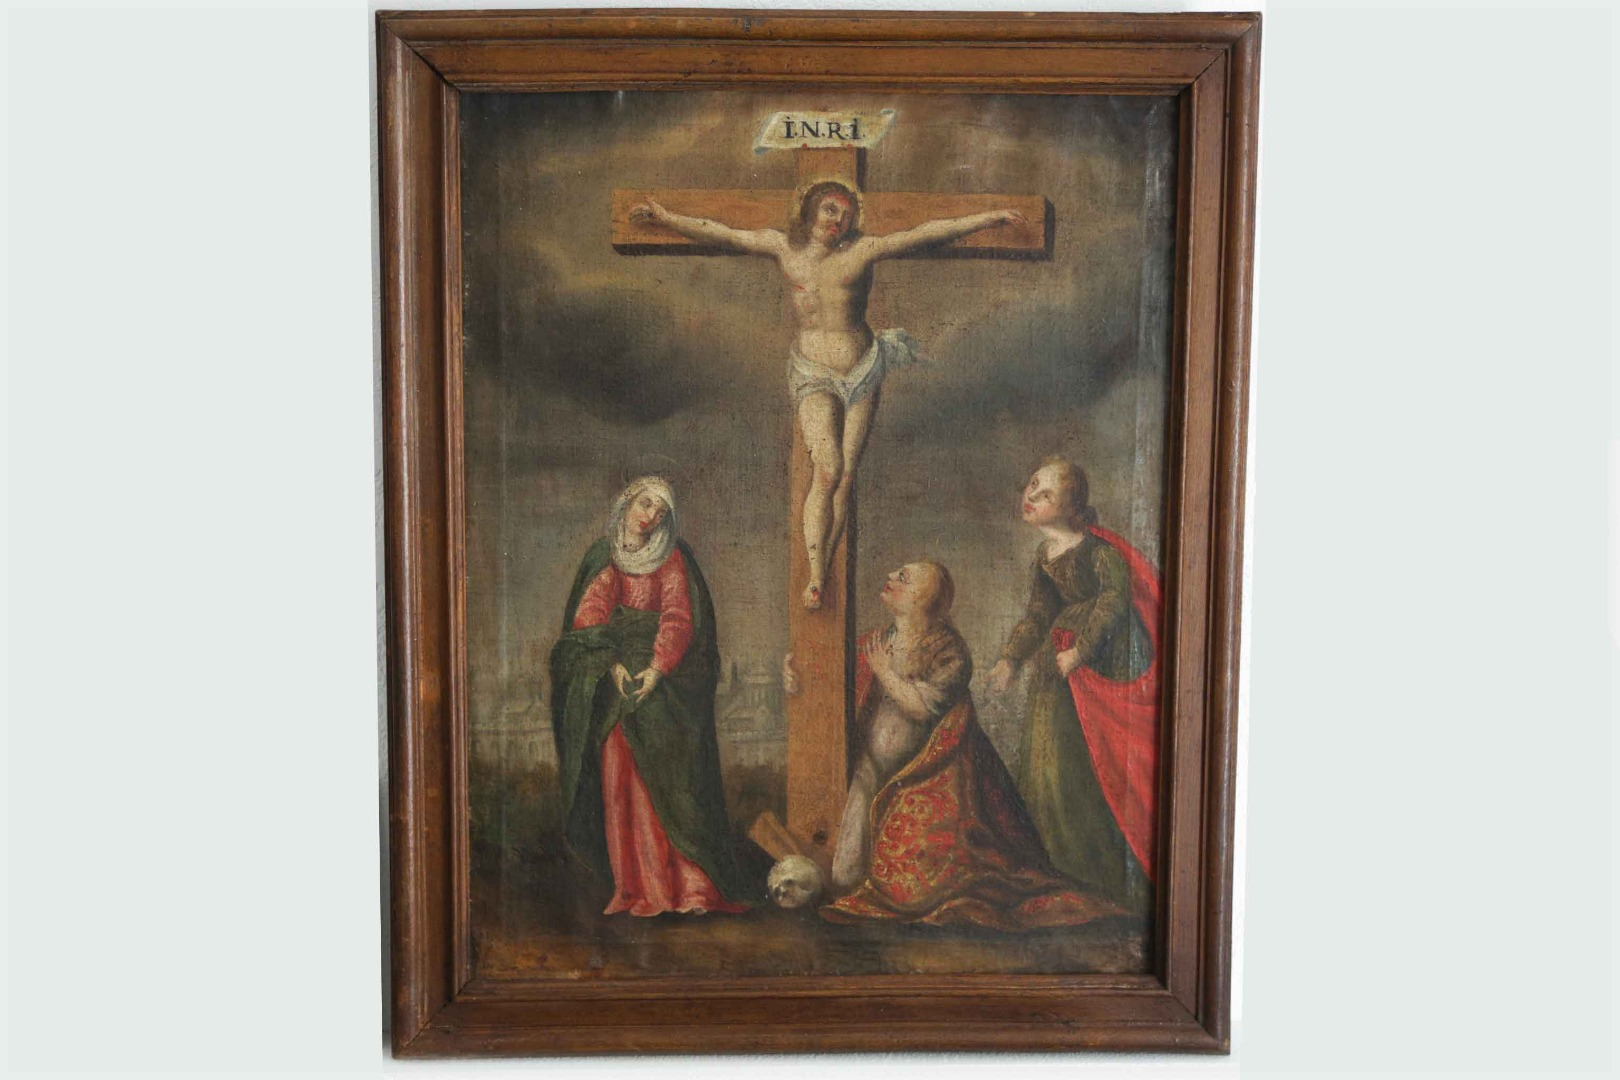 Crucifiction, Oil On Canvas, XVIIth Century